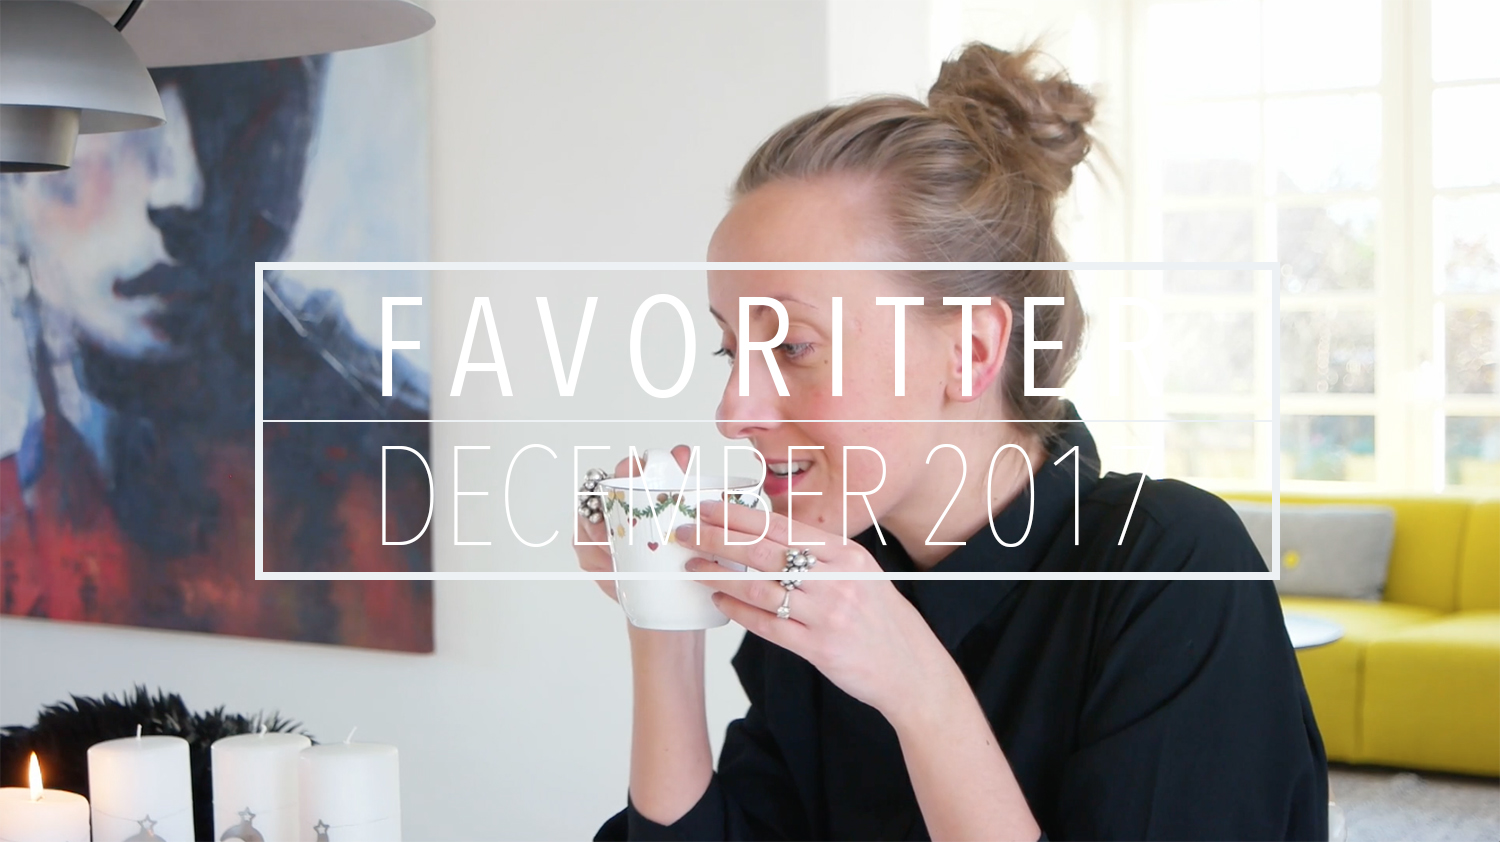 Favoritter december 2017